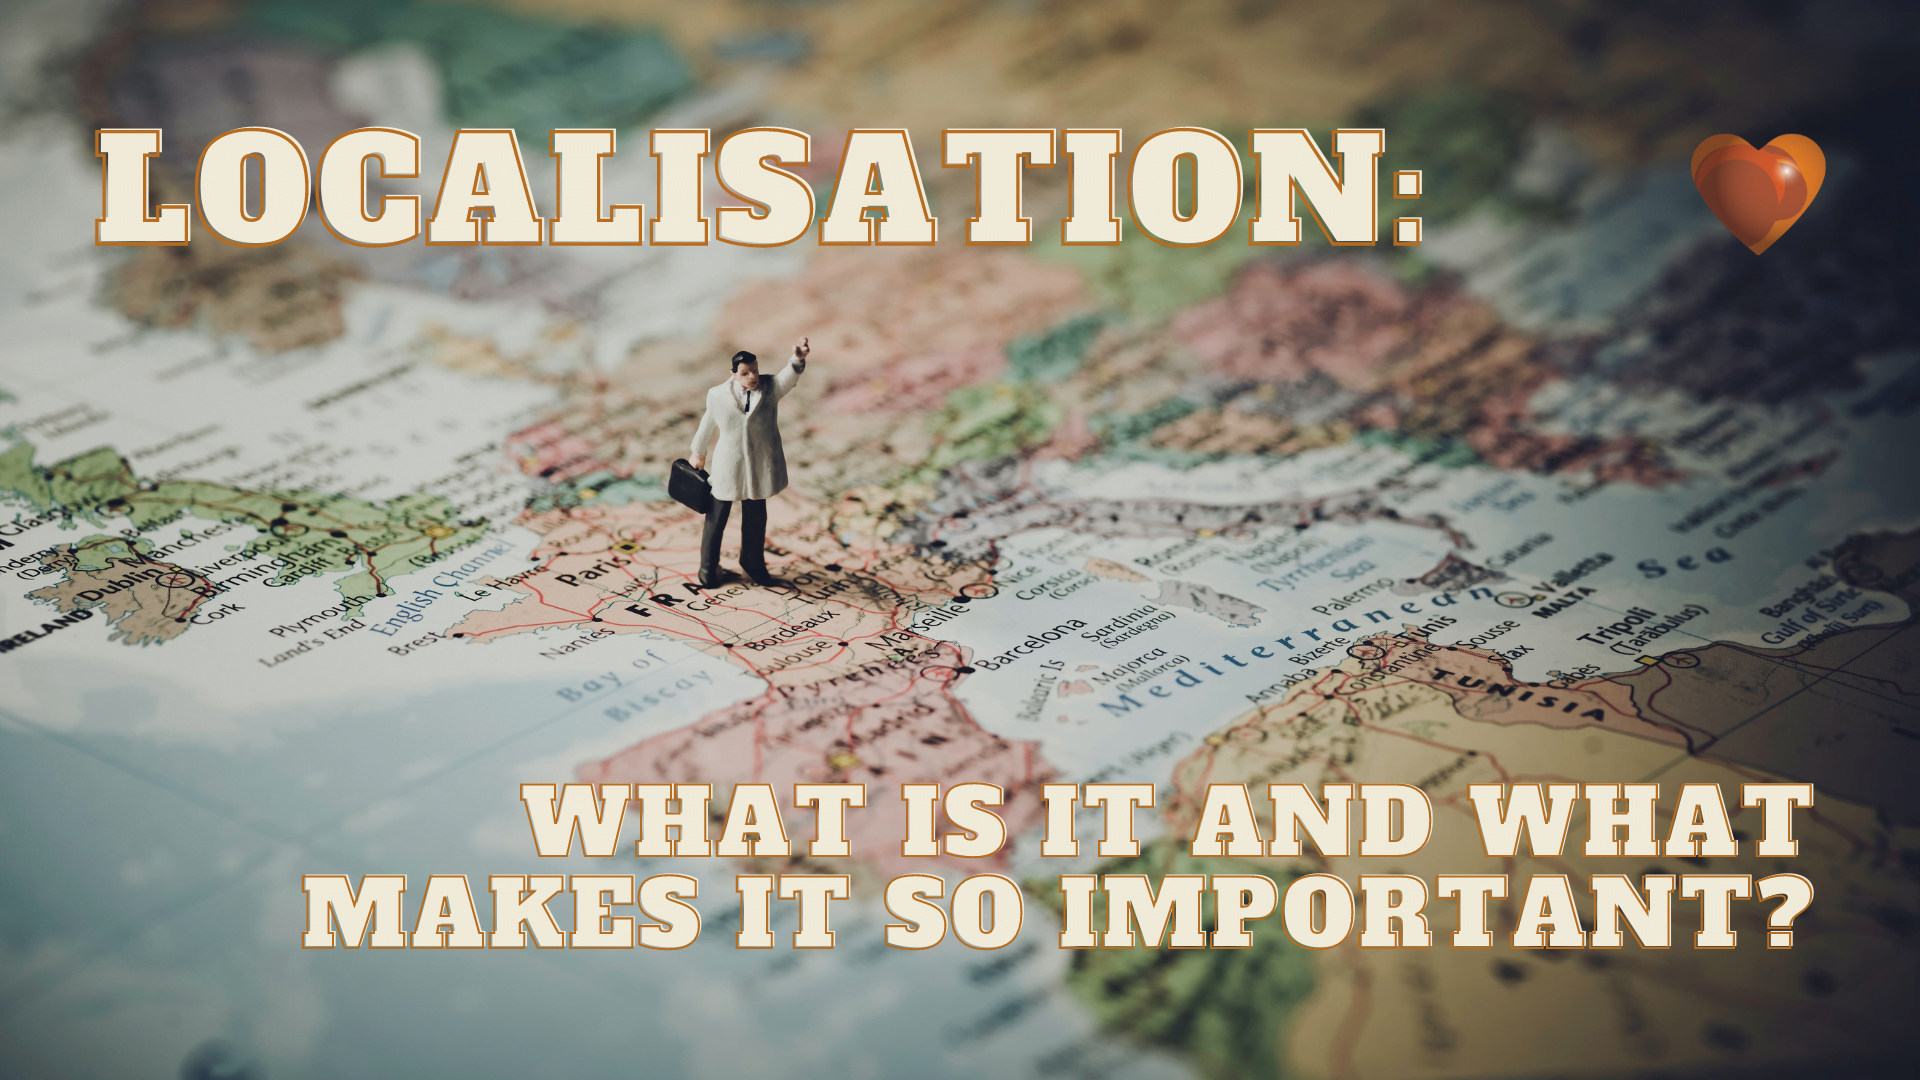 Localisation_ What Is It and What Makes It So Important_Business man standing on a map of Western Europe - looking to sell abroad